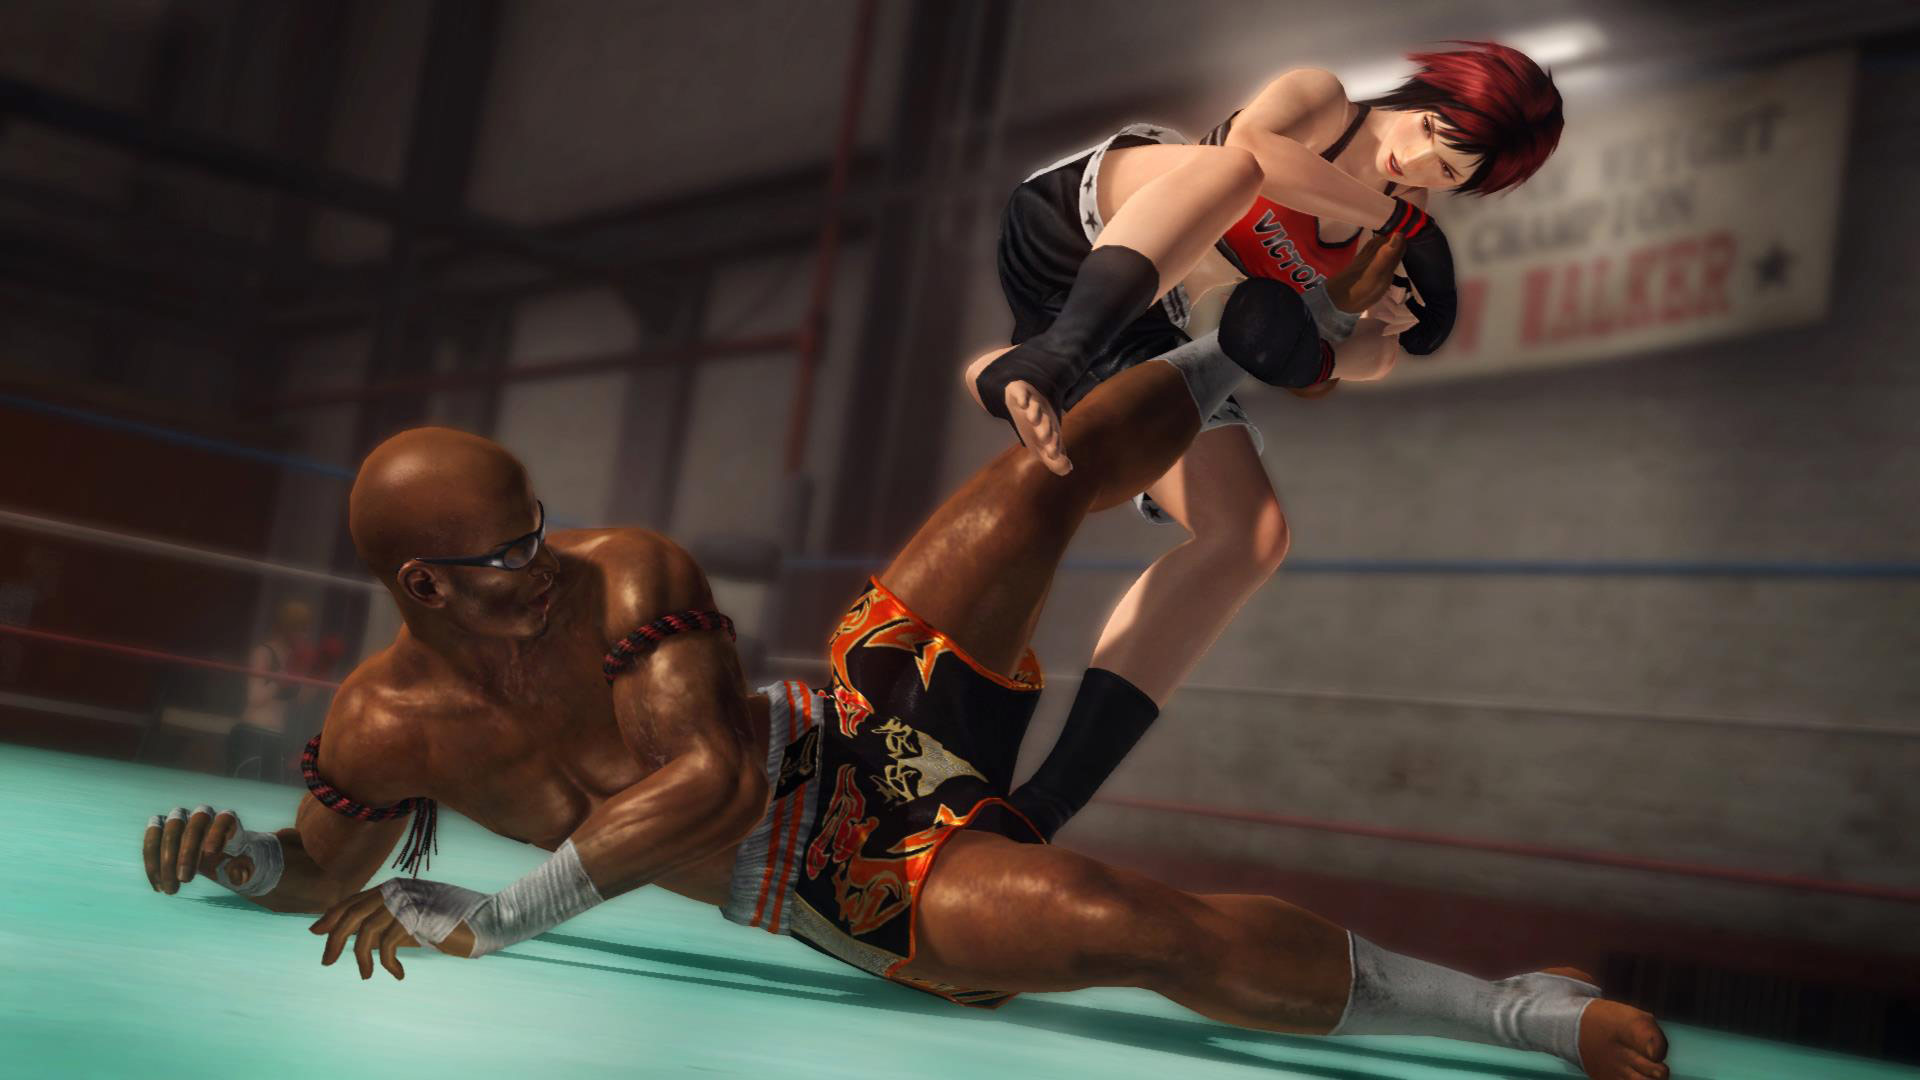 Badass Game Girl Wallpaper Dead Or Alive 5 Tfg Review Art Gallery